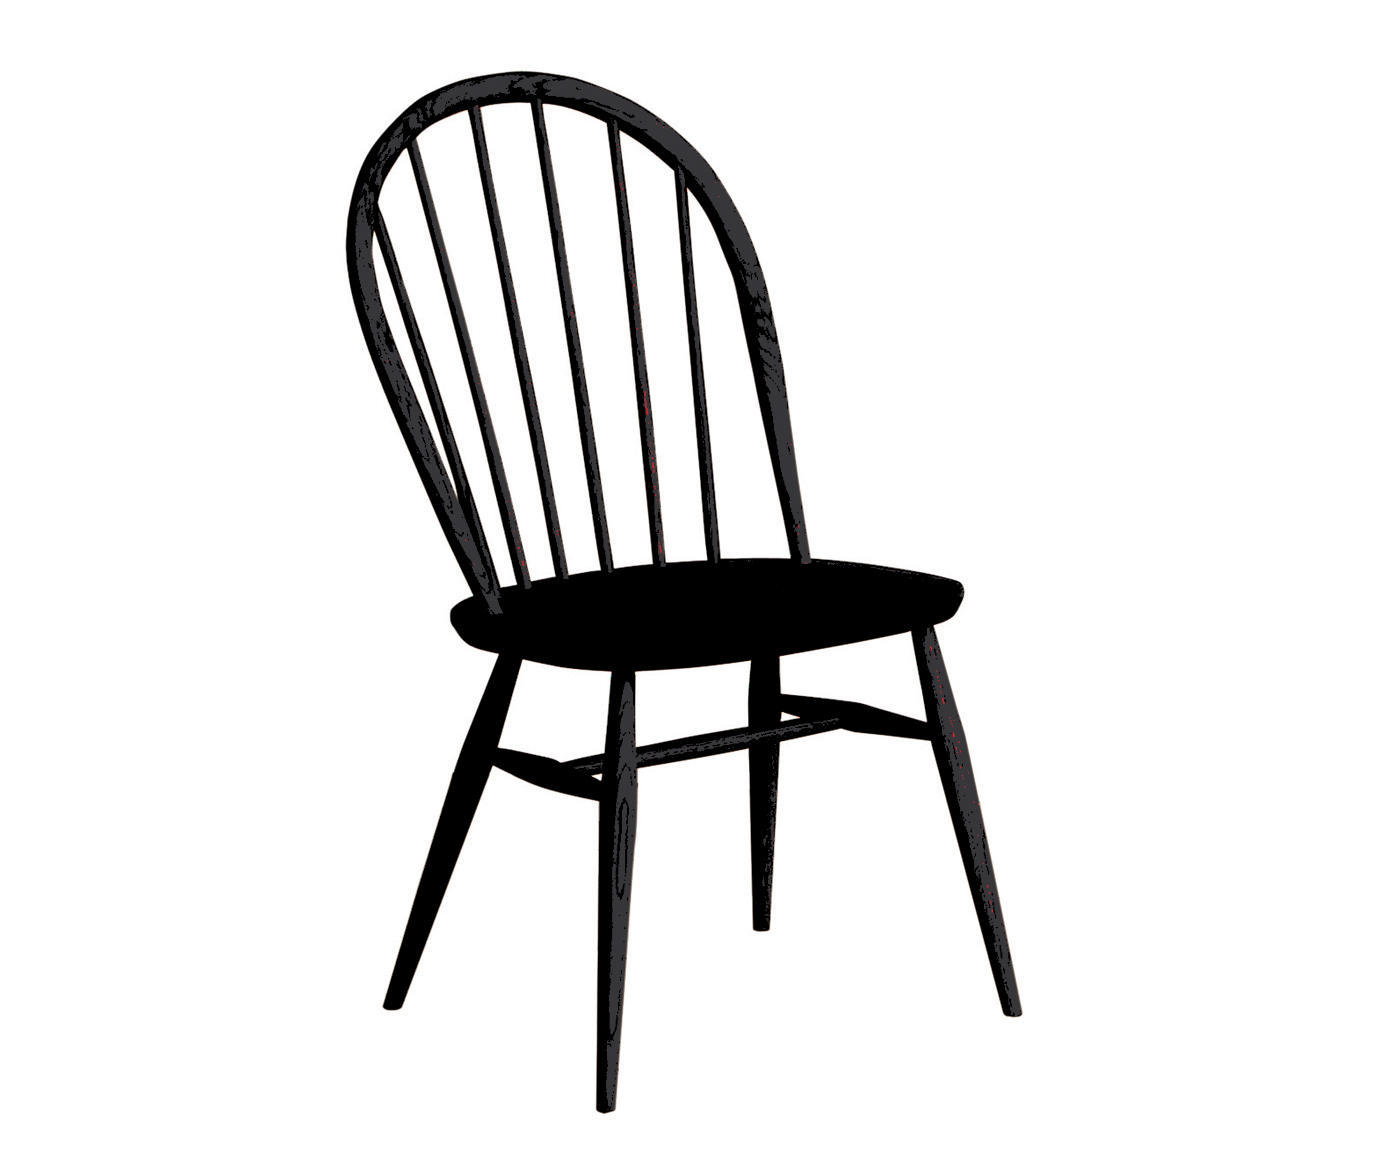 Windsor Chairs Black Originals Windsor Chair Chairs From Ercol Architonic